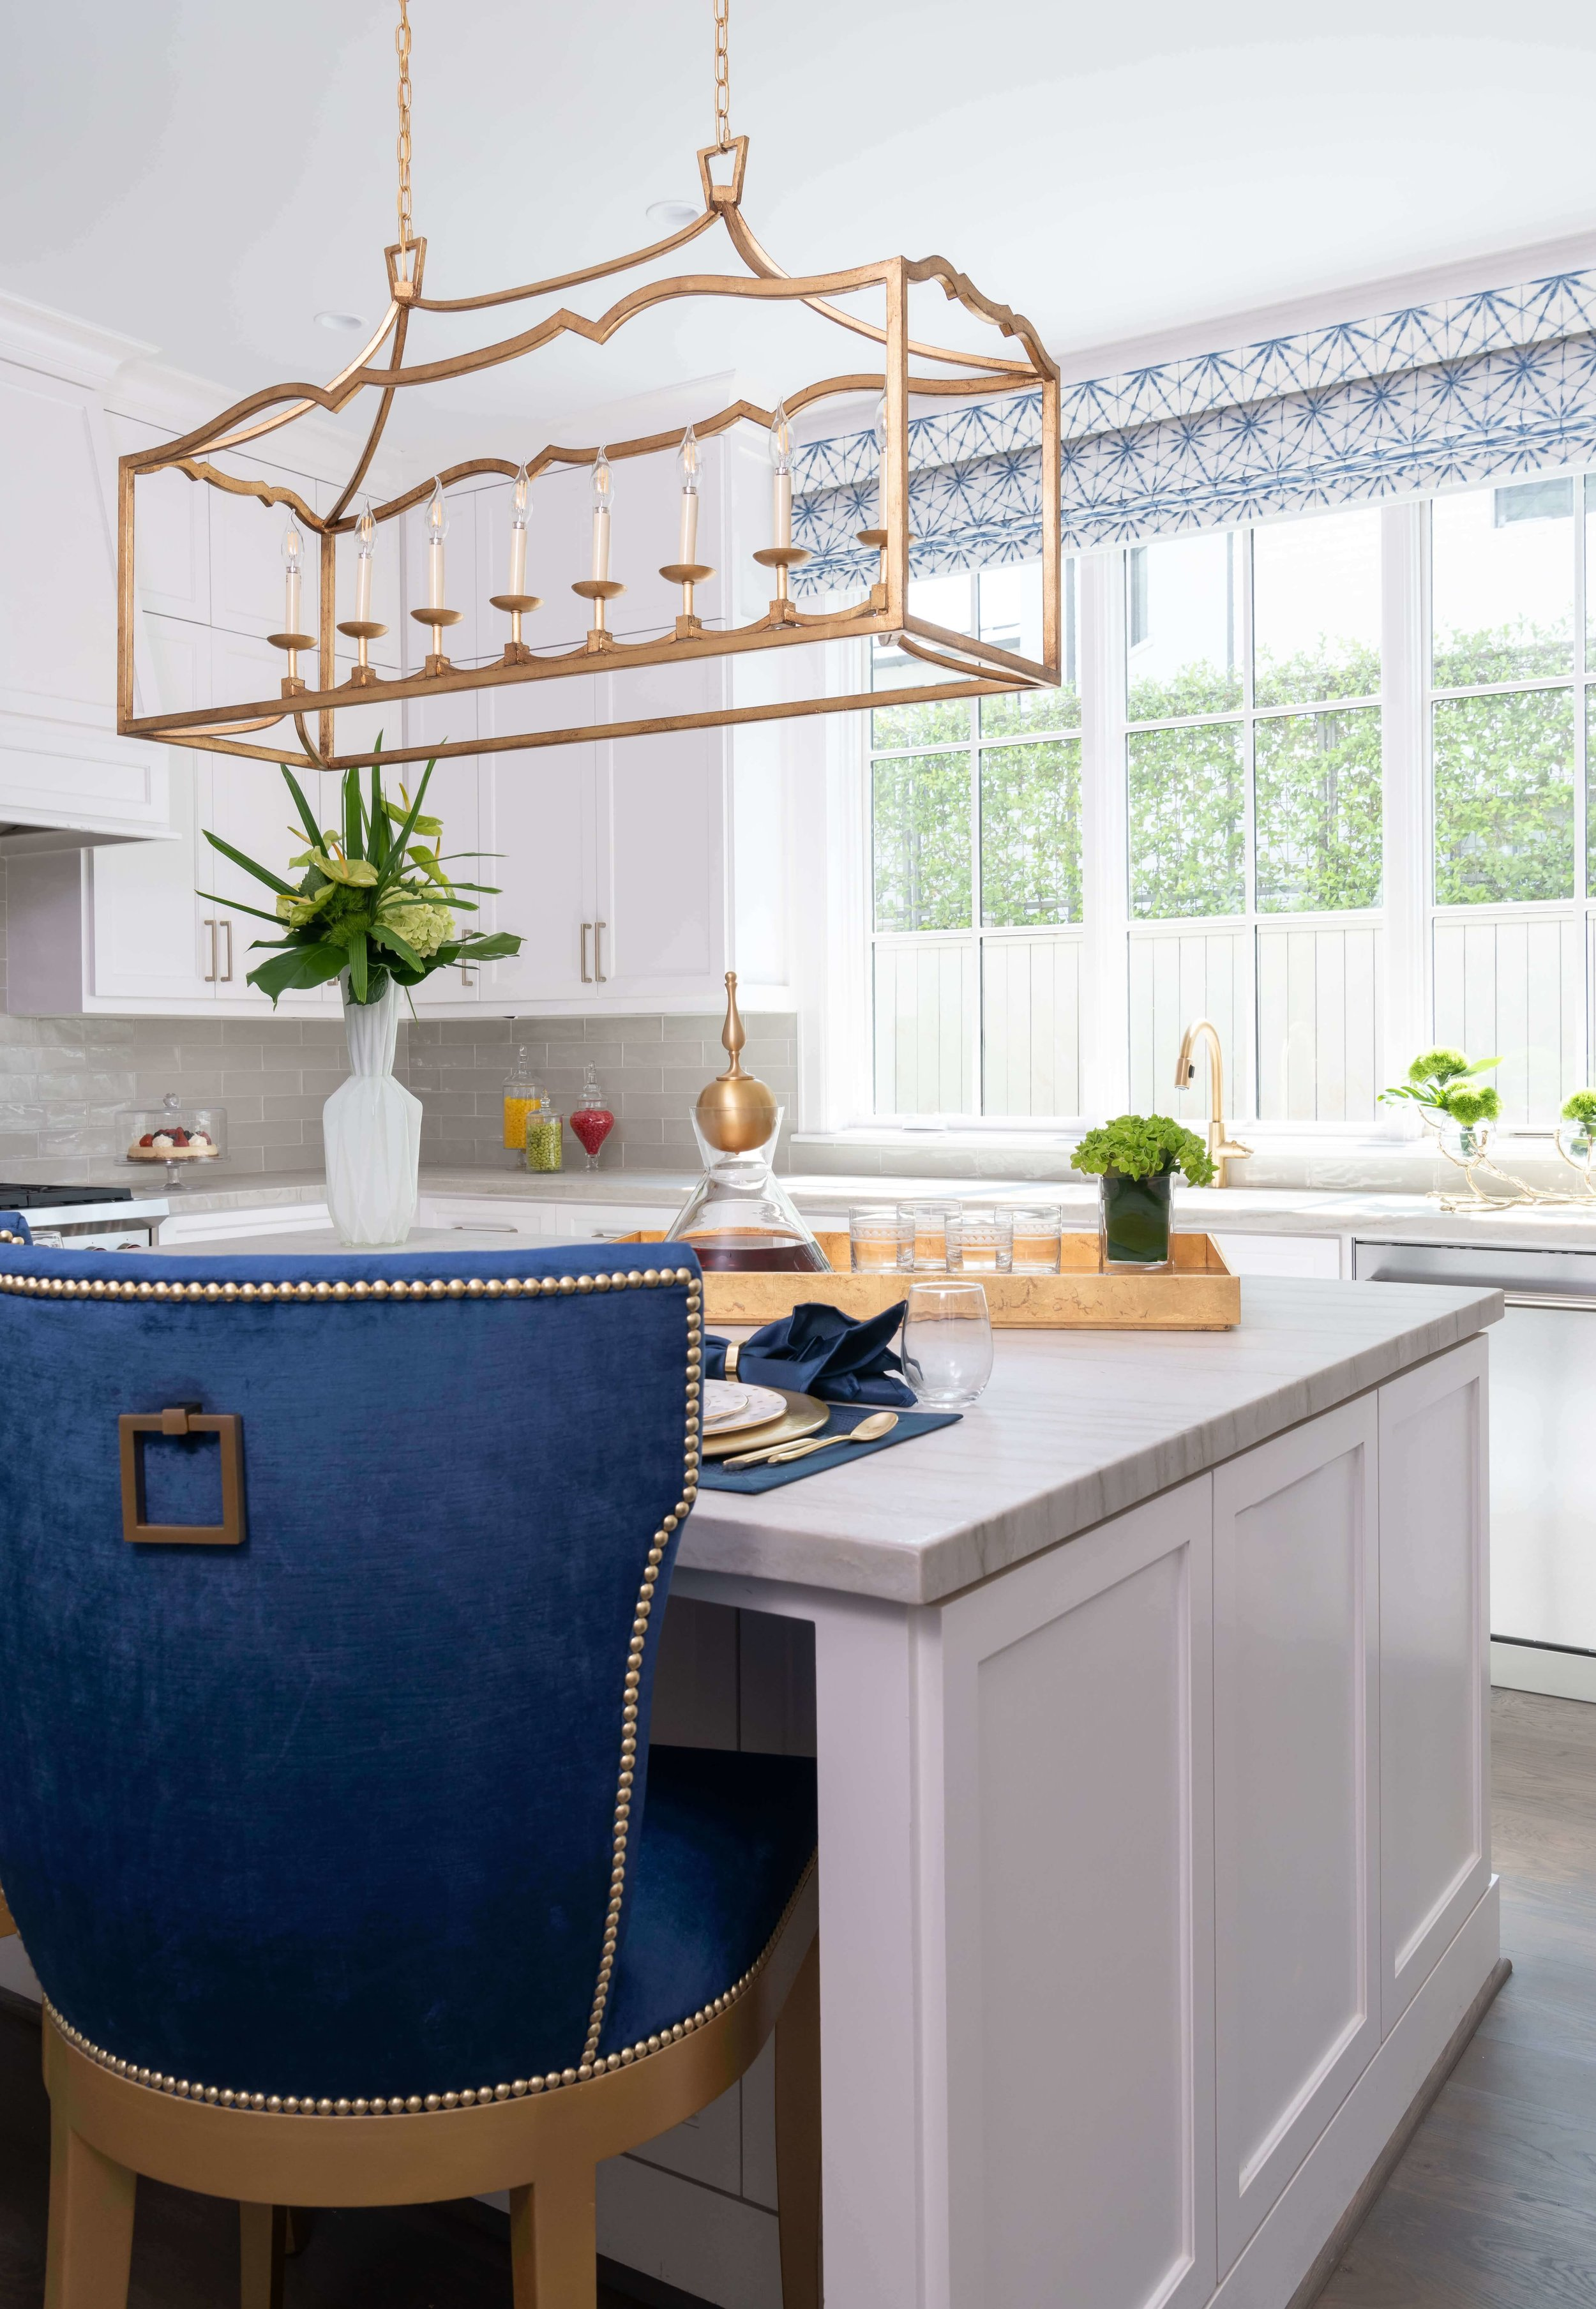 Bold blue counterstools and a gilded lantern bring color and warmth to this white kitchen space, designed by Missy Stewart. ASID River Oaks Showhouse | Photographer - Michael Hunter #kitchen #whitekitchen #counterstool